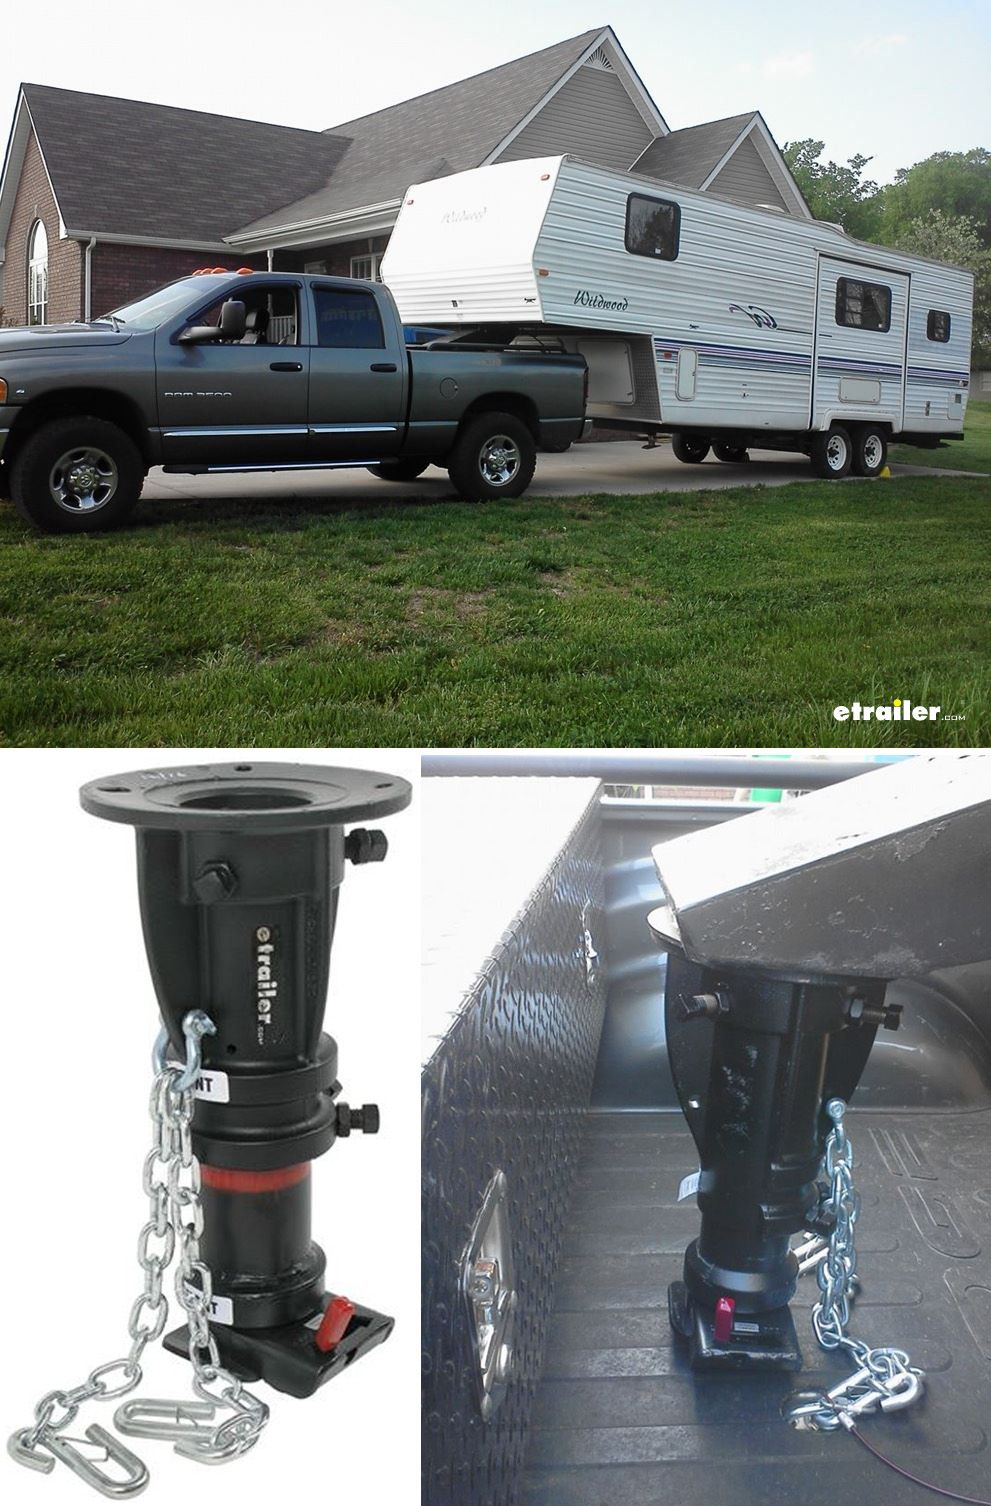 medium resolution of hook up and tow your 5th wheel camper with an adapter